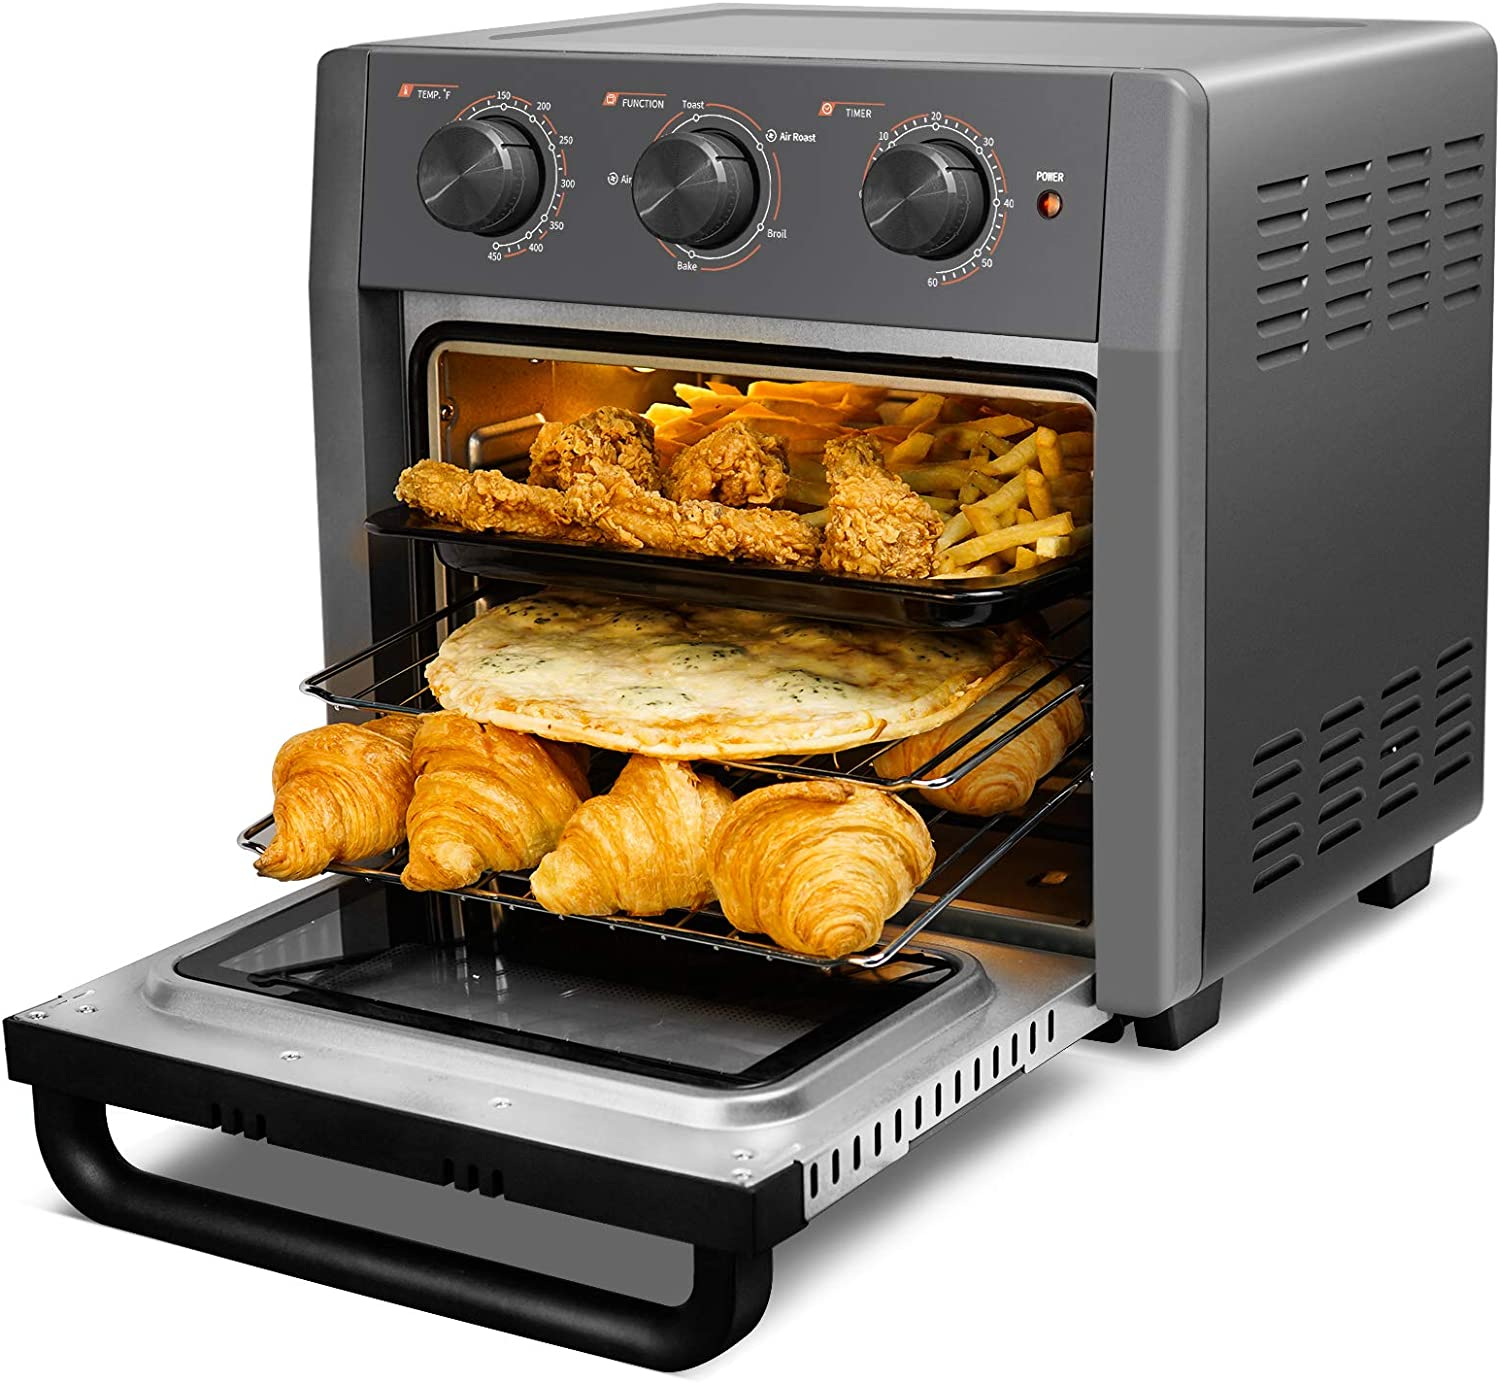 WEESTA 19 Quart Air Fryer Toaster Oven, 5-IN-1 Countertop Convection Oven with Air Fry Air Roast Toast Broil Bake Function for Fried Chicken, Steak, Fries, Tater Tots, Chips, Bacon, Pizza, etc.